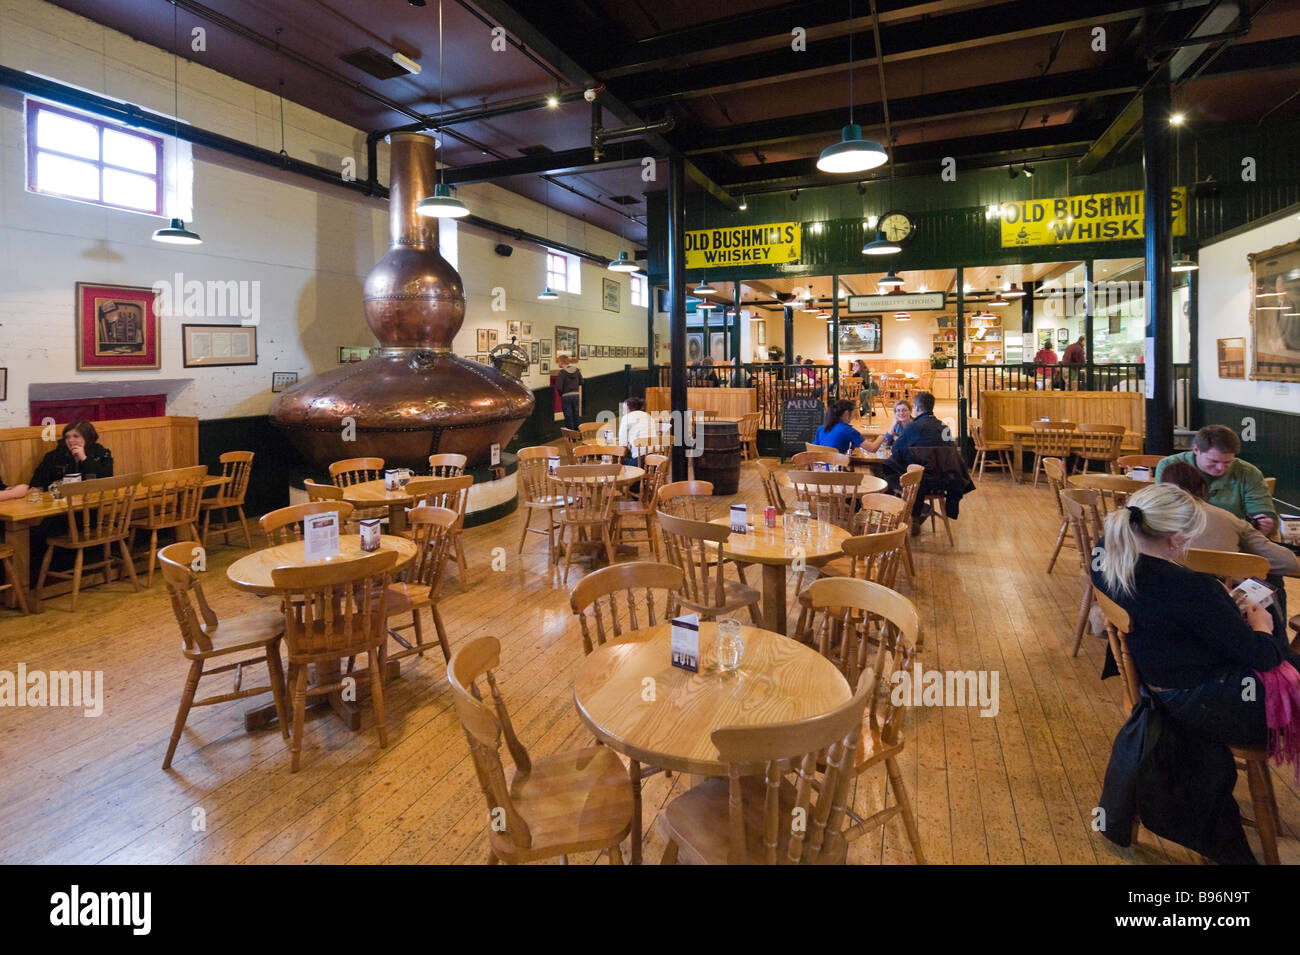 Bar and Cafeteria at the Old Bushmills Distillery, Bushmills, County Antrim, Northern Ireland - Stock Image